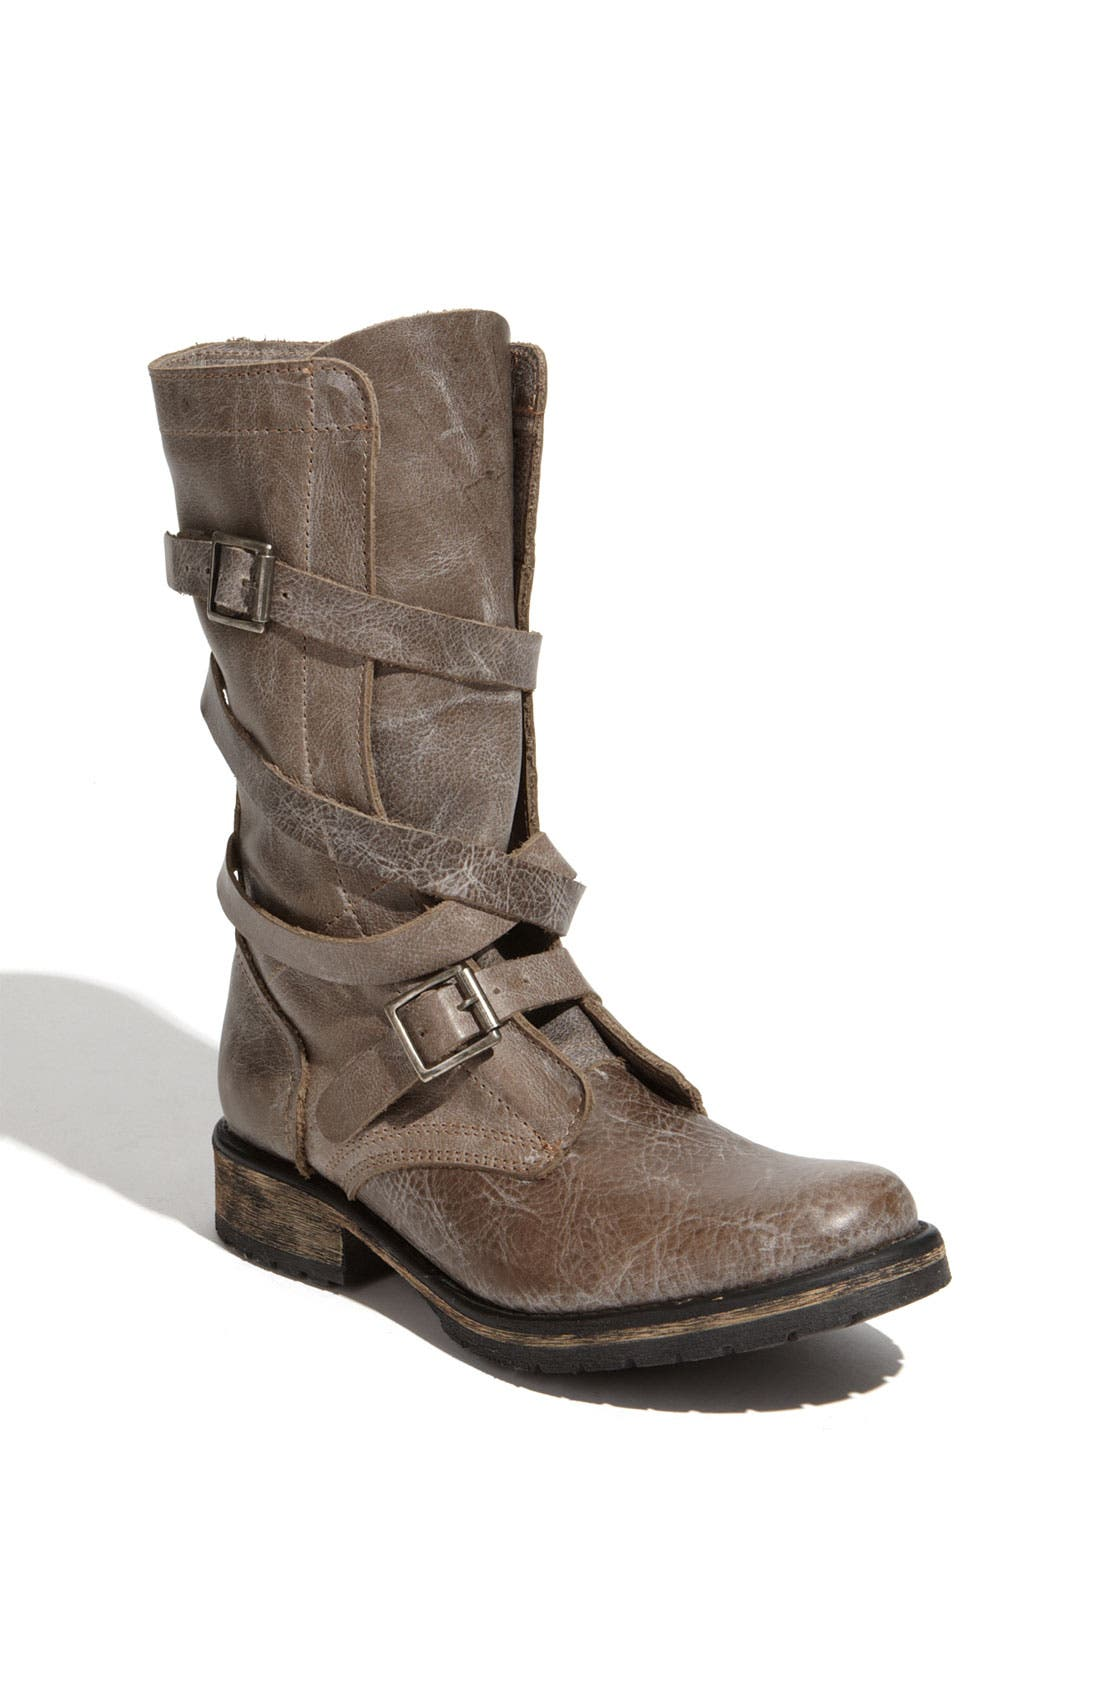 Alternate Image 1 Selected - Steve Madden 'Banddit Buckle' Boot